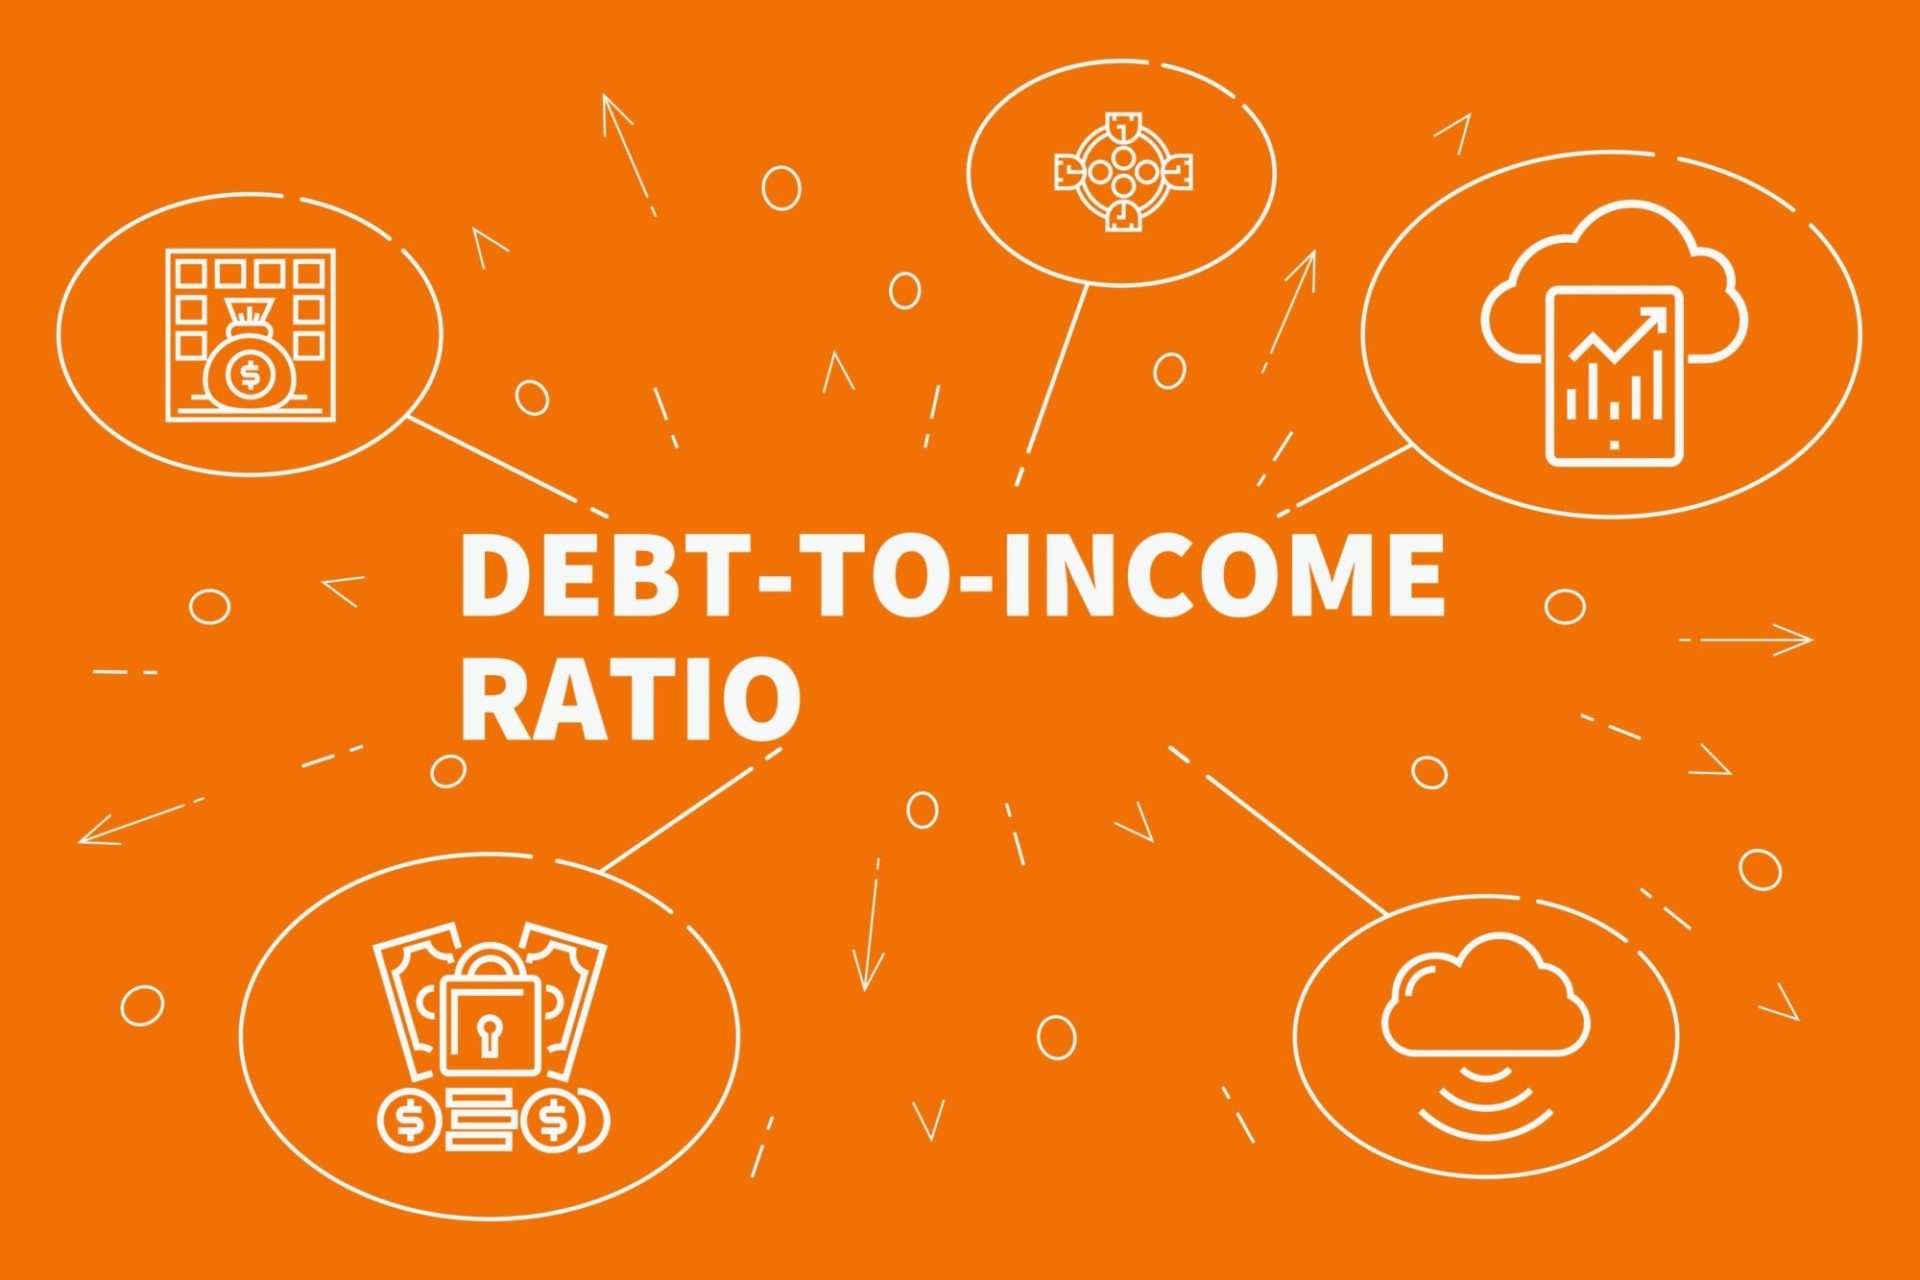 NYC Mortgage Debt-to-Income Ratio Requirements